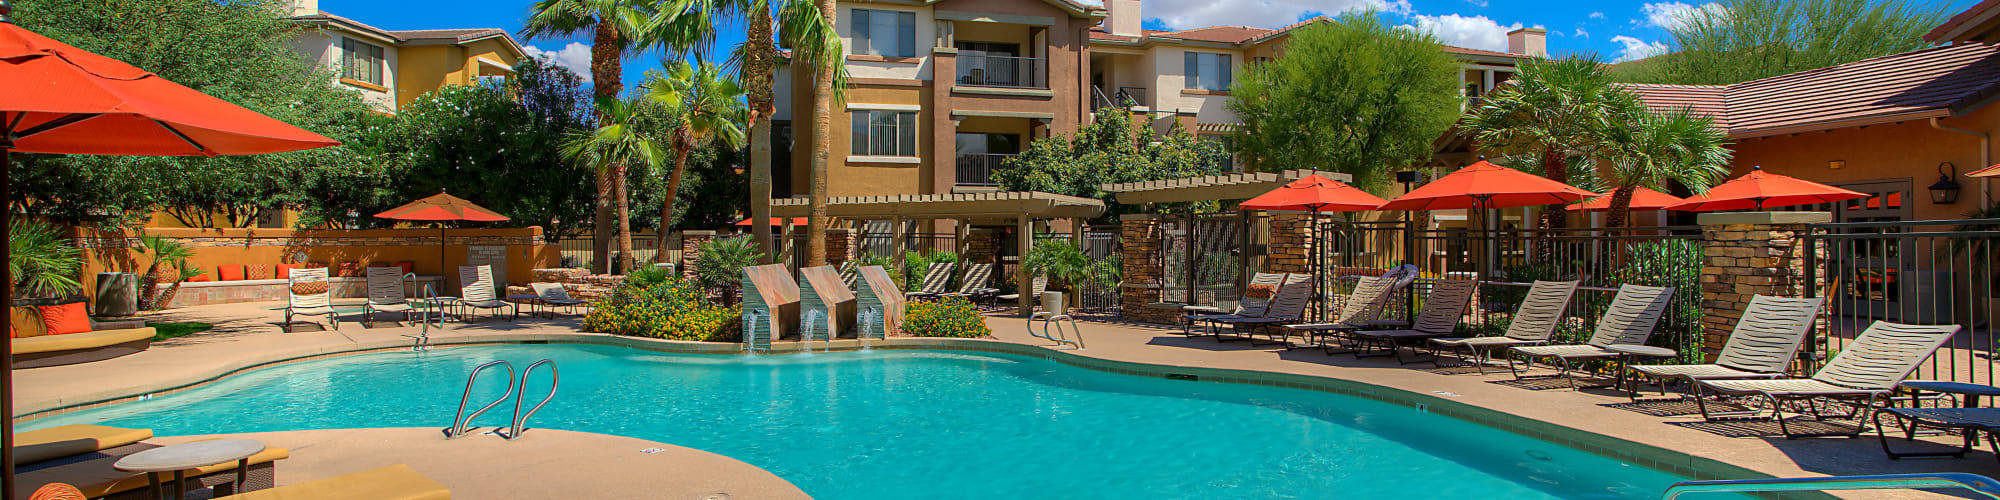 Virtual tour of Borrego at Spectrum in Gilbert, Arizona